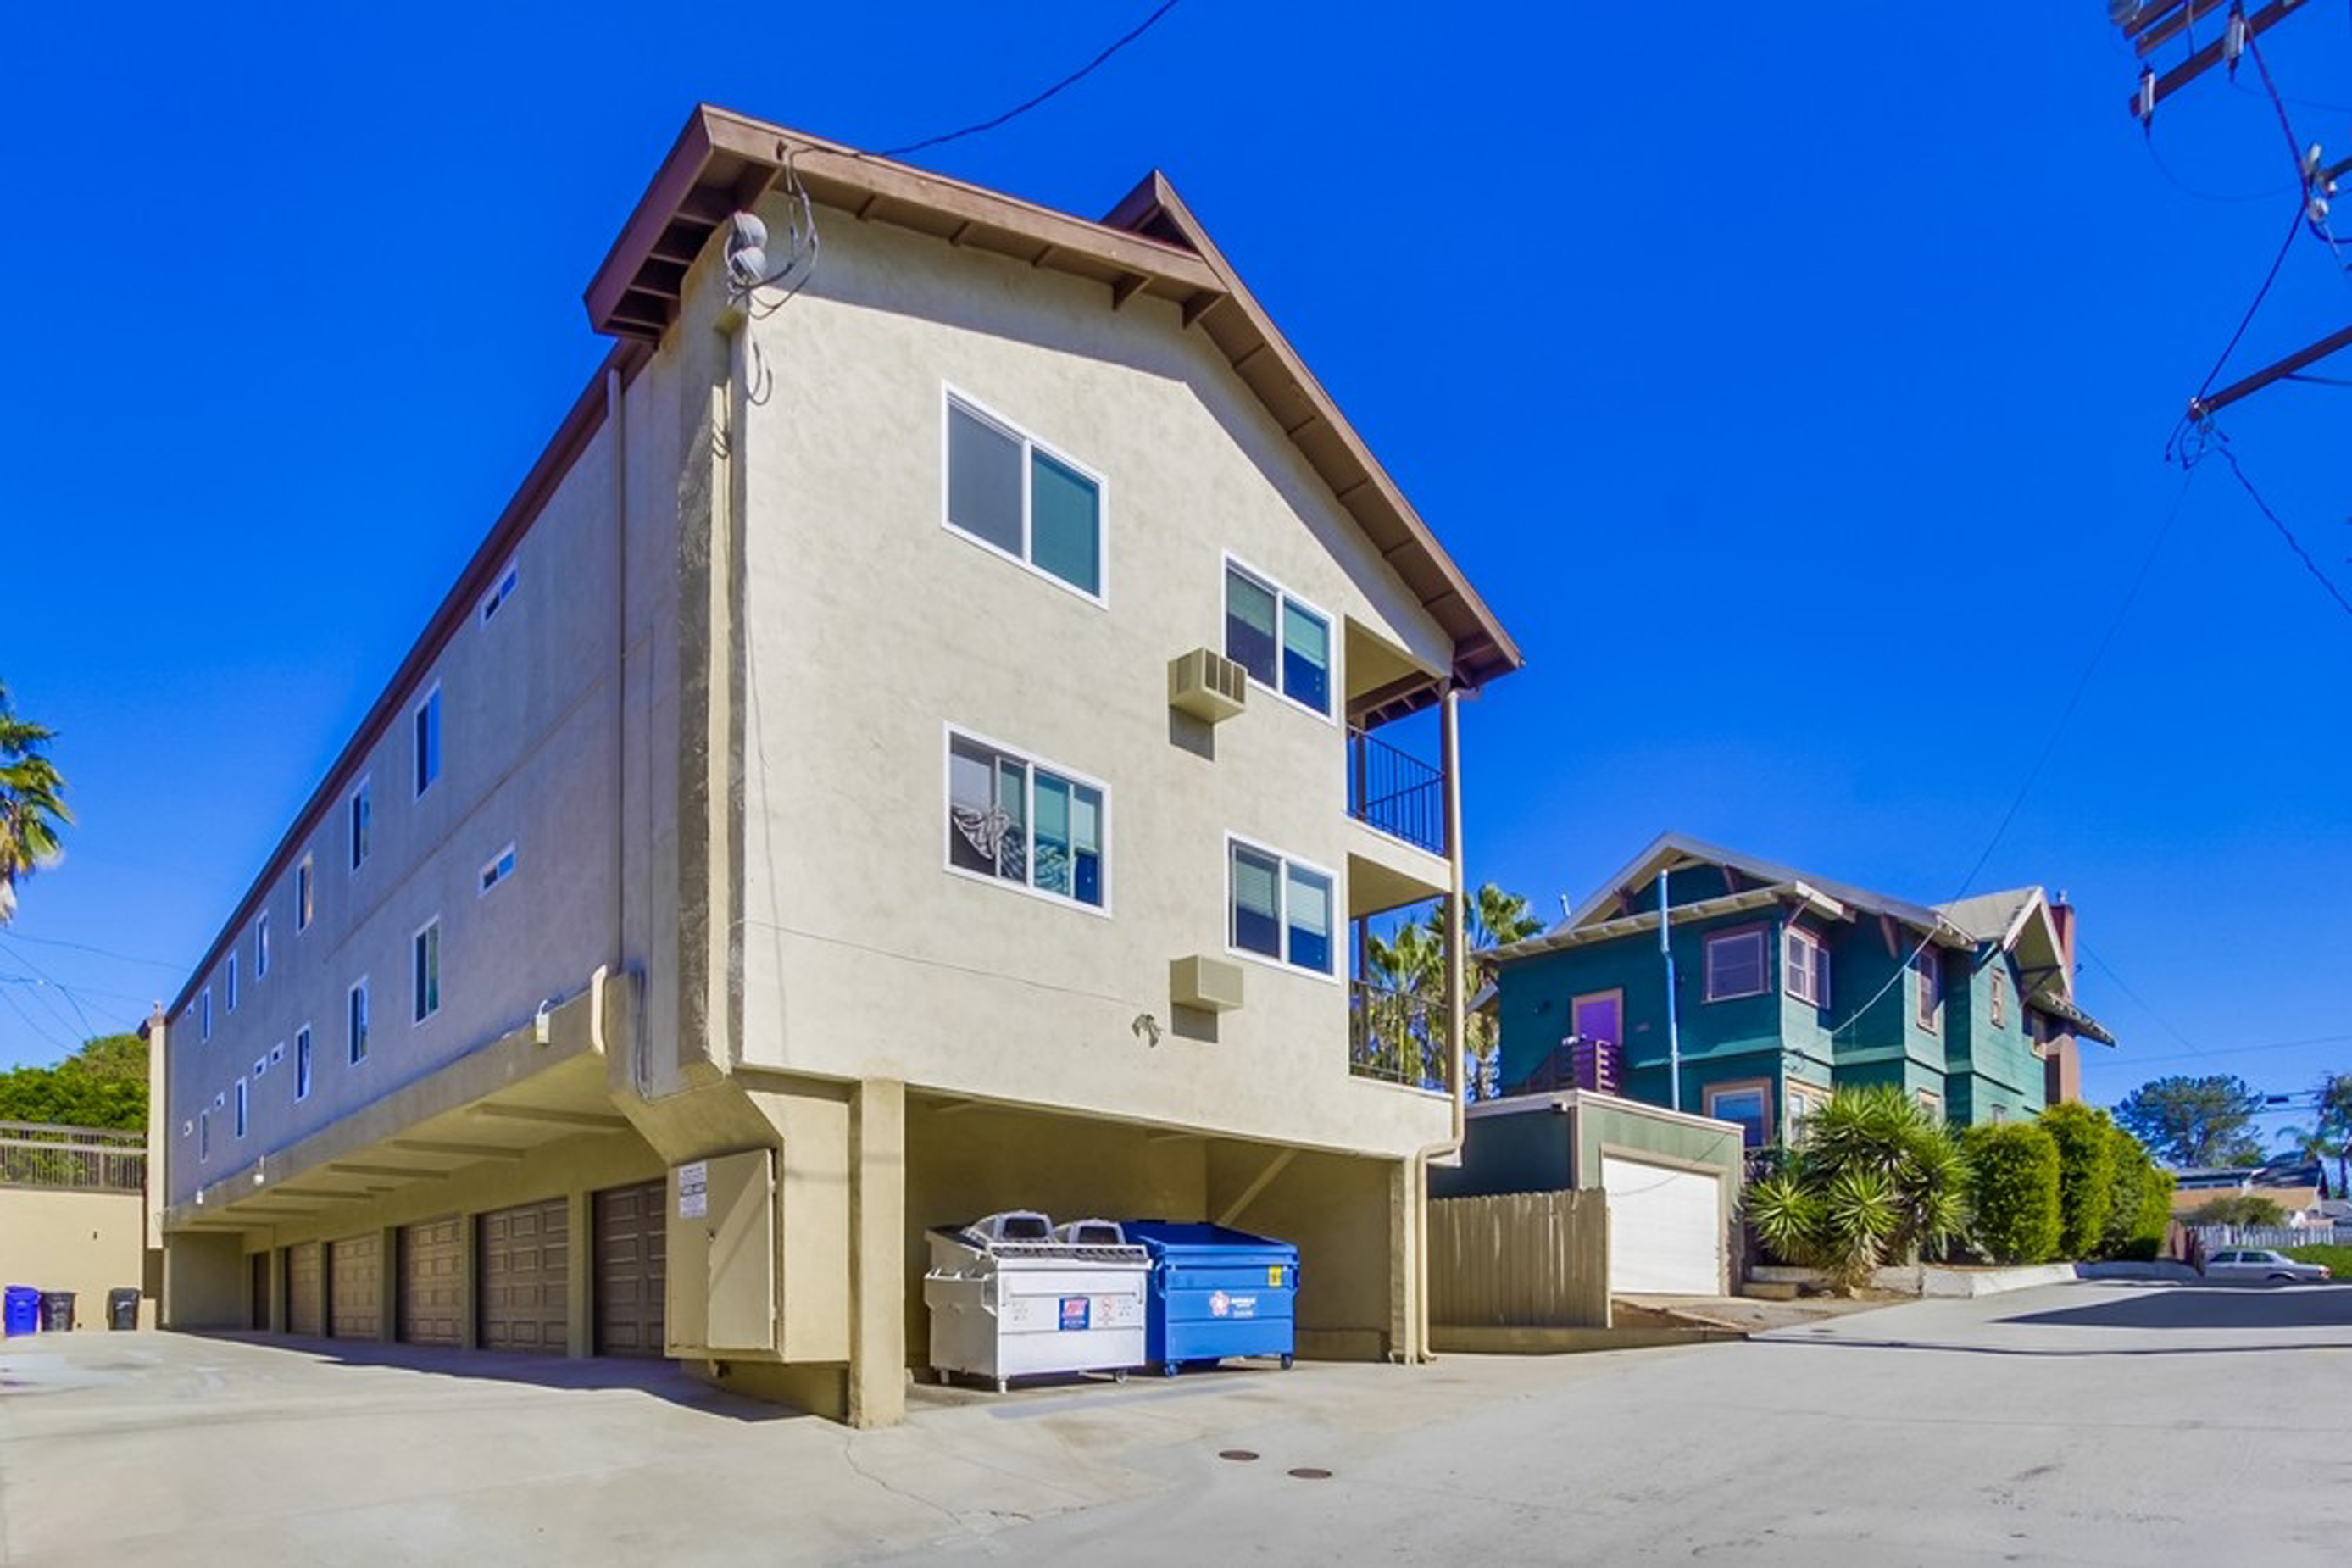 SAN DIEGO, October 24, 2016 U2013 ACI Apartments Is Pleased To Announce The  Recent Sale Of An 11 Unit Complex In Golden Hill, A Neighborhood In San  Diego.